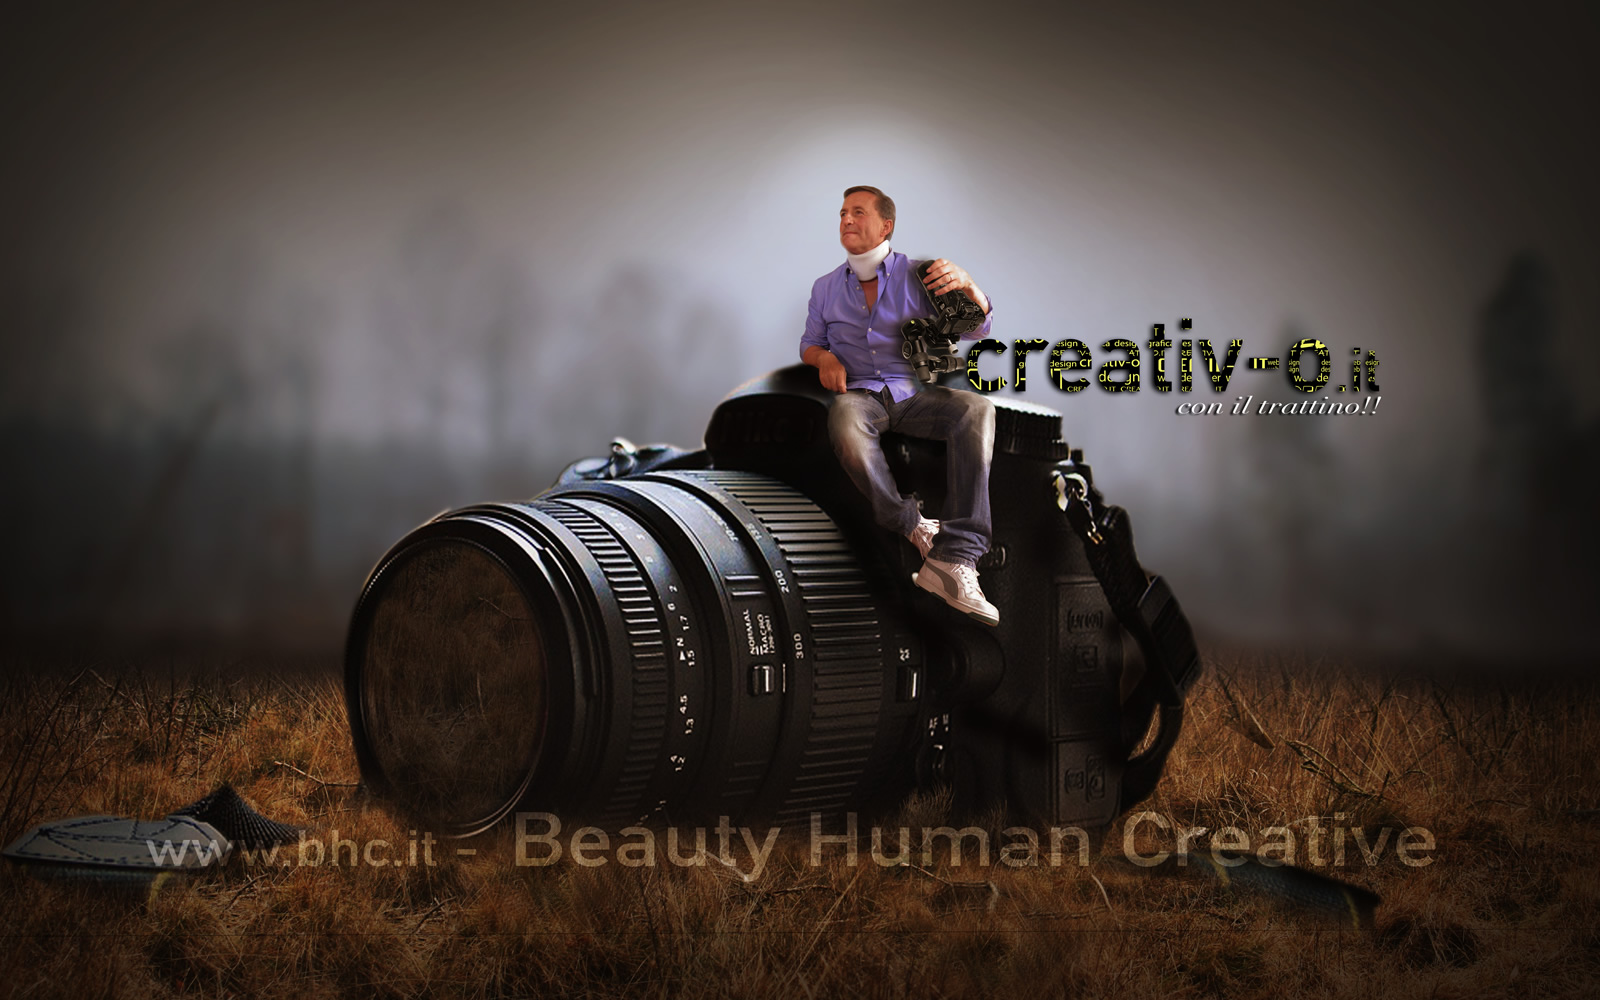 BHC - Beauty human creative